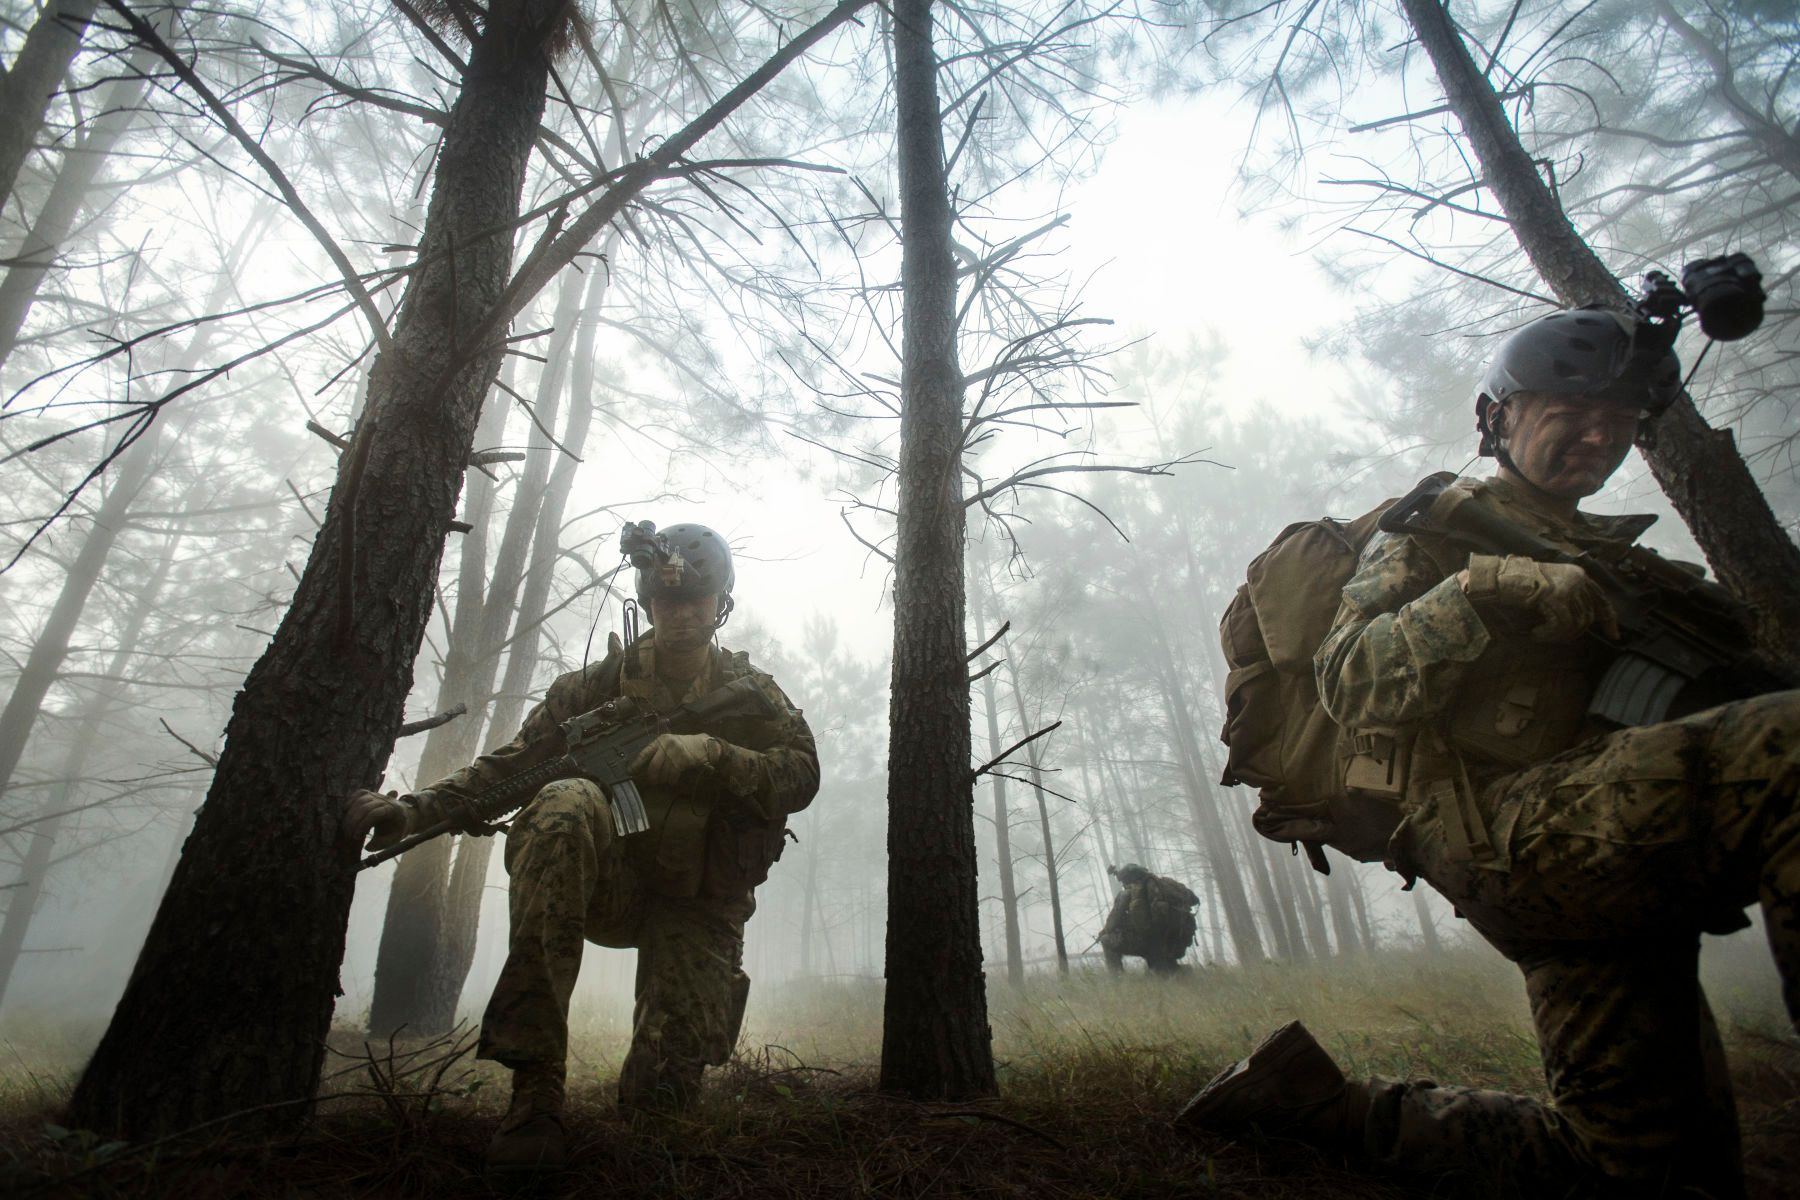 United States Marine Corps | Vance Jacobs Photographer